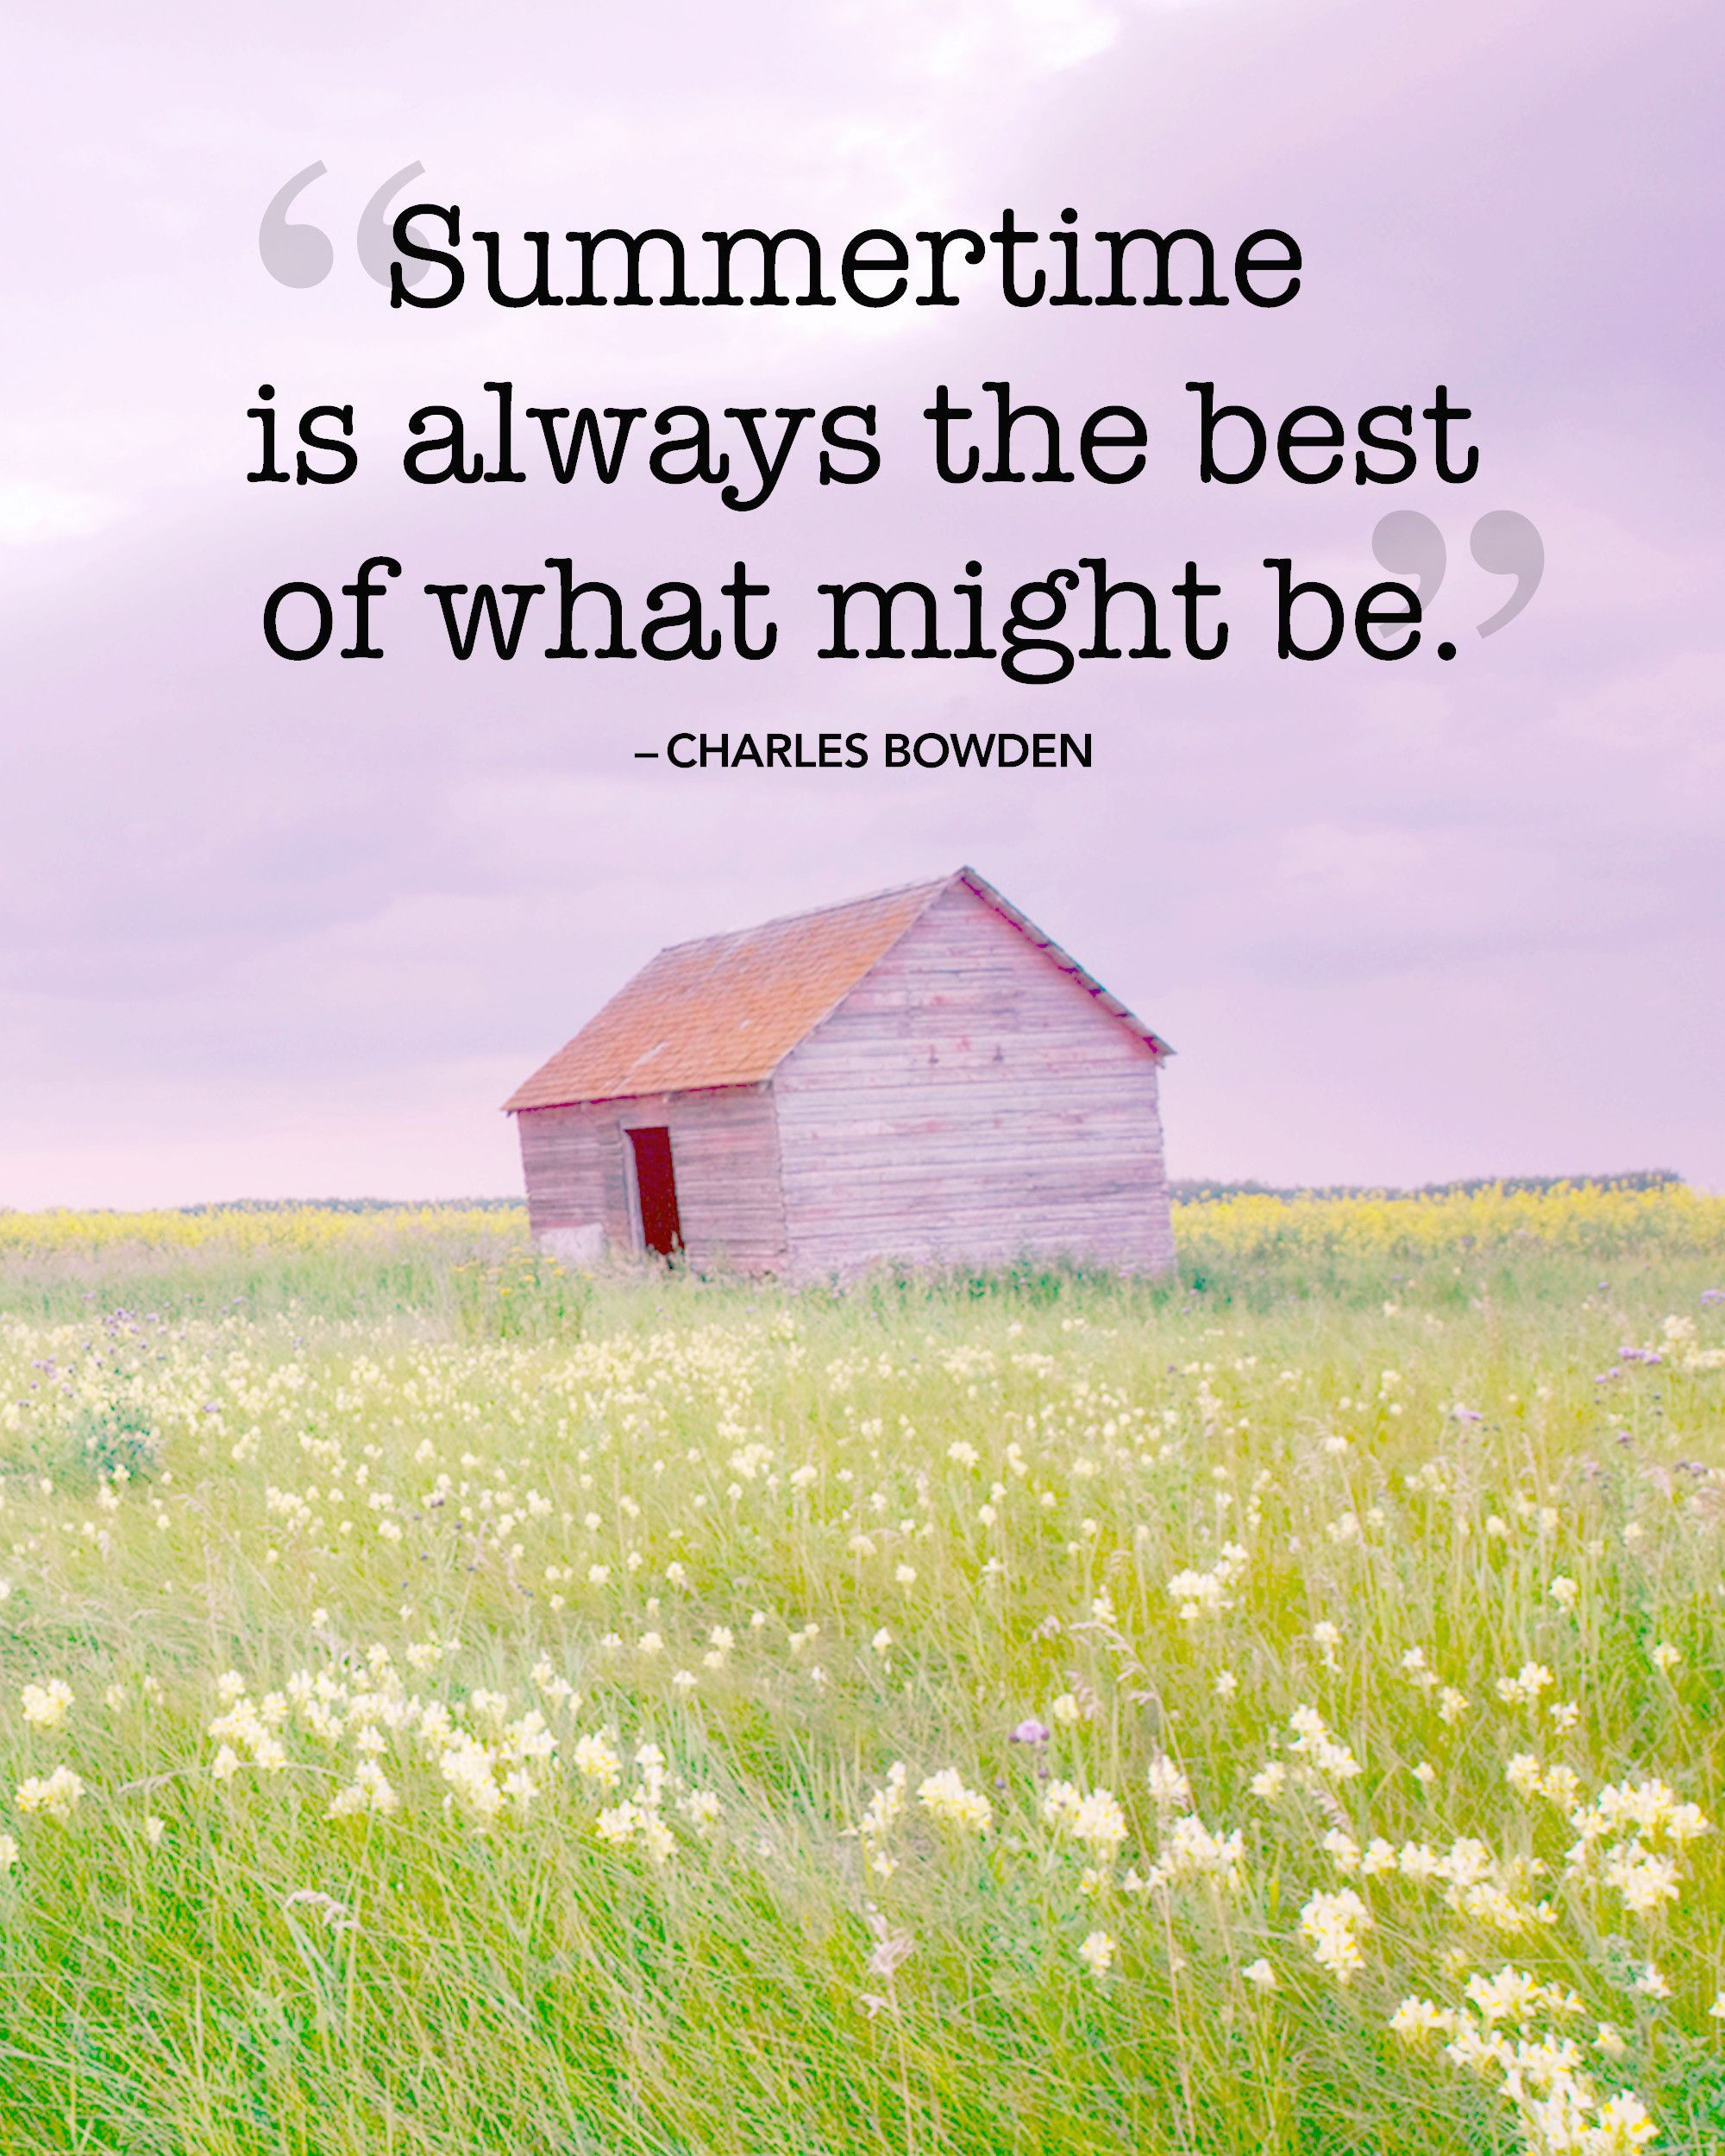 Absolutely Beautiful Quotes About Summer  Summertime quotes